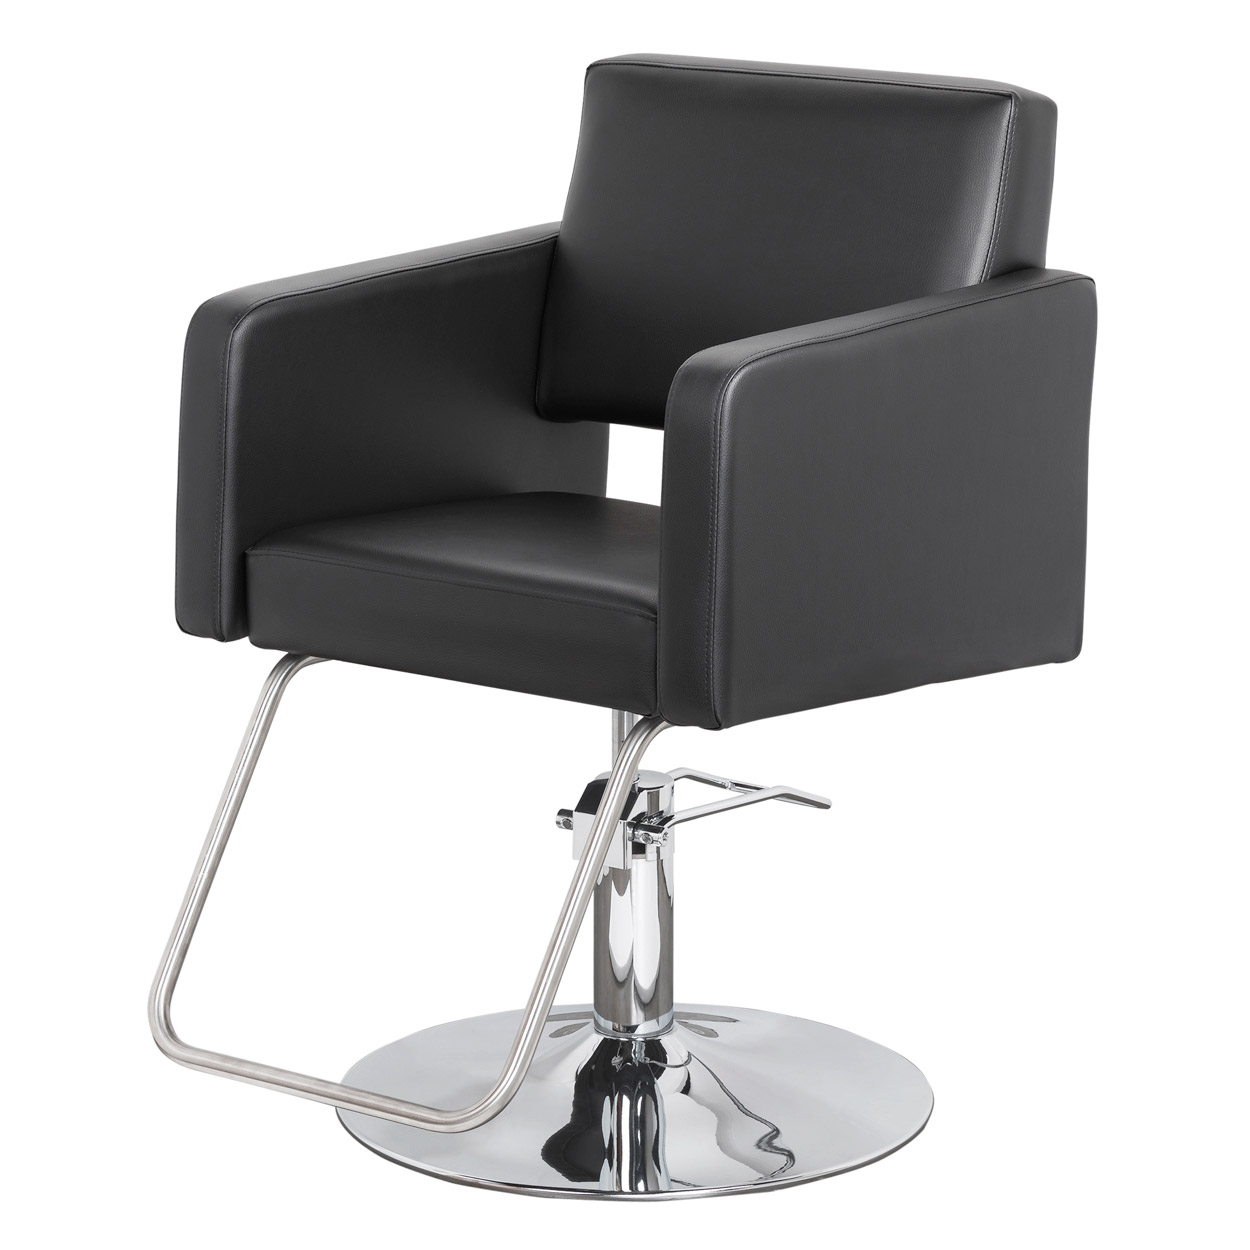 Modin Hair Salon Styling Chair  main product image